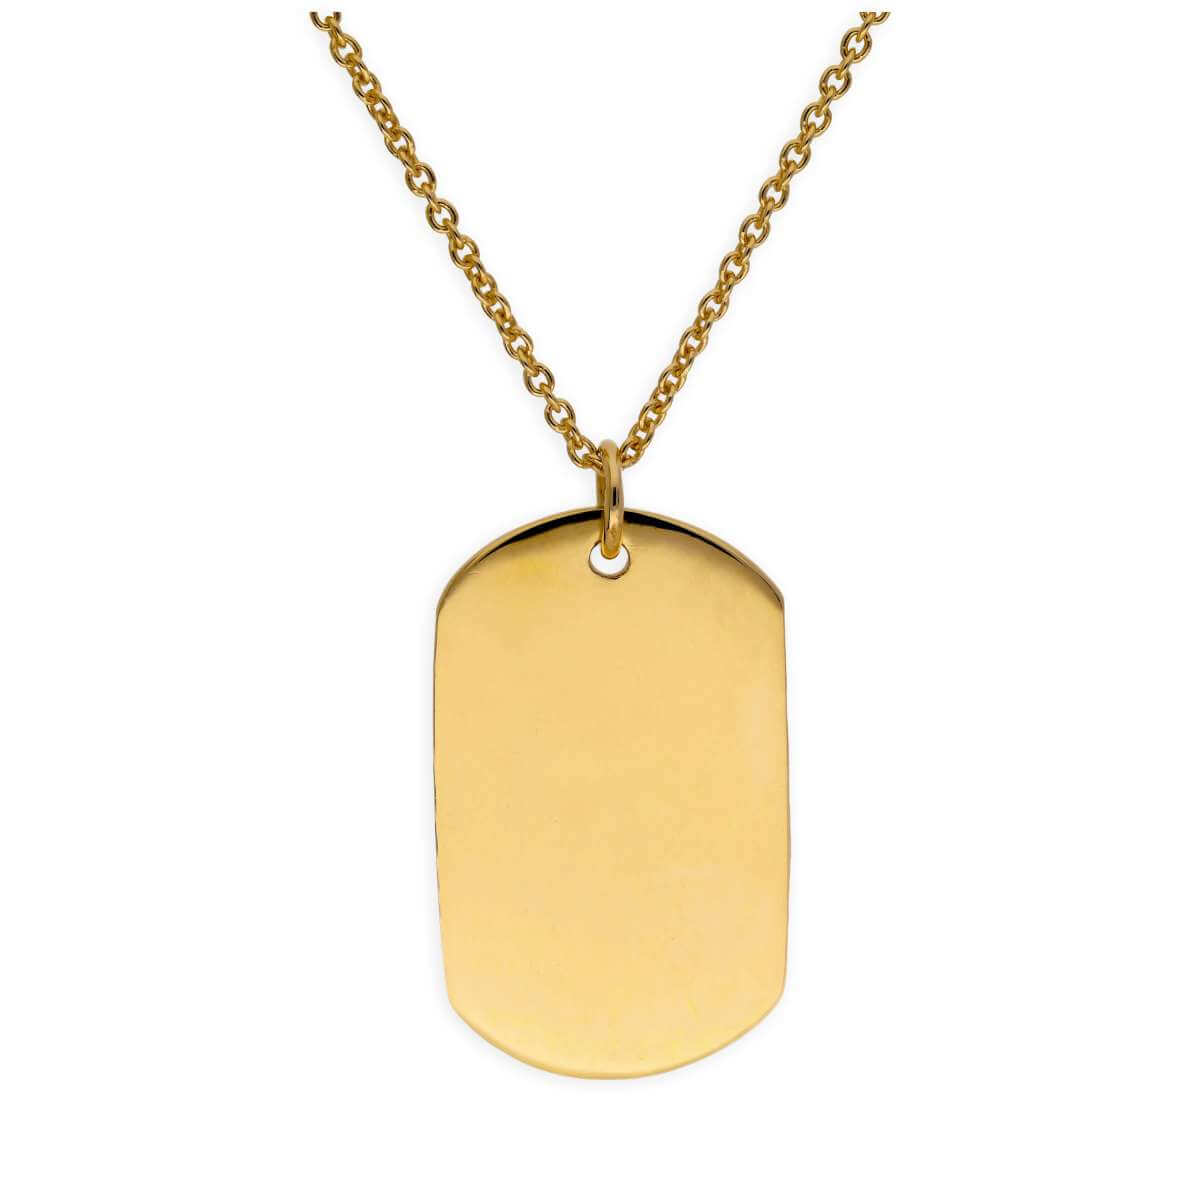 Large Gold Plated Sterling Silver Dog Tag Necklace 16 - 24 Inches